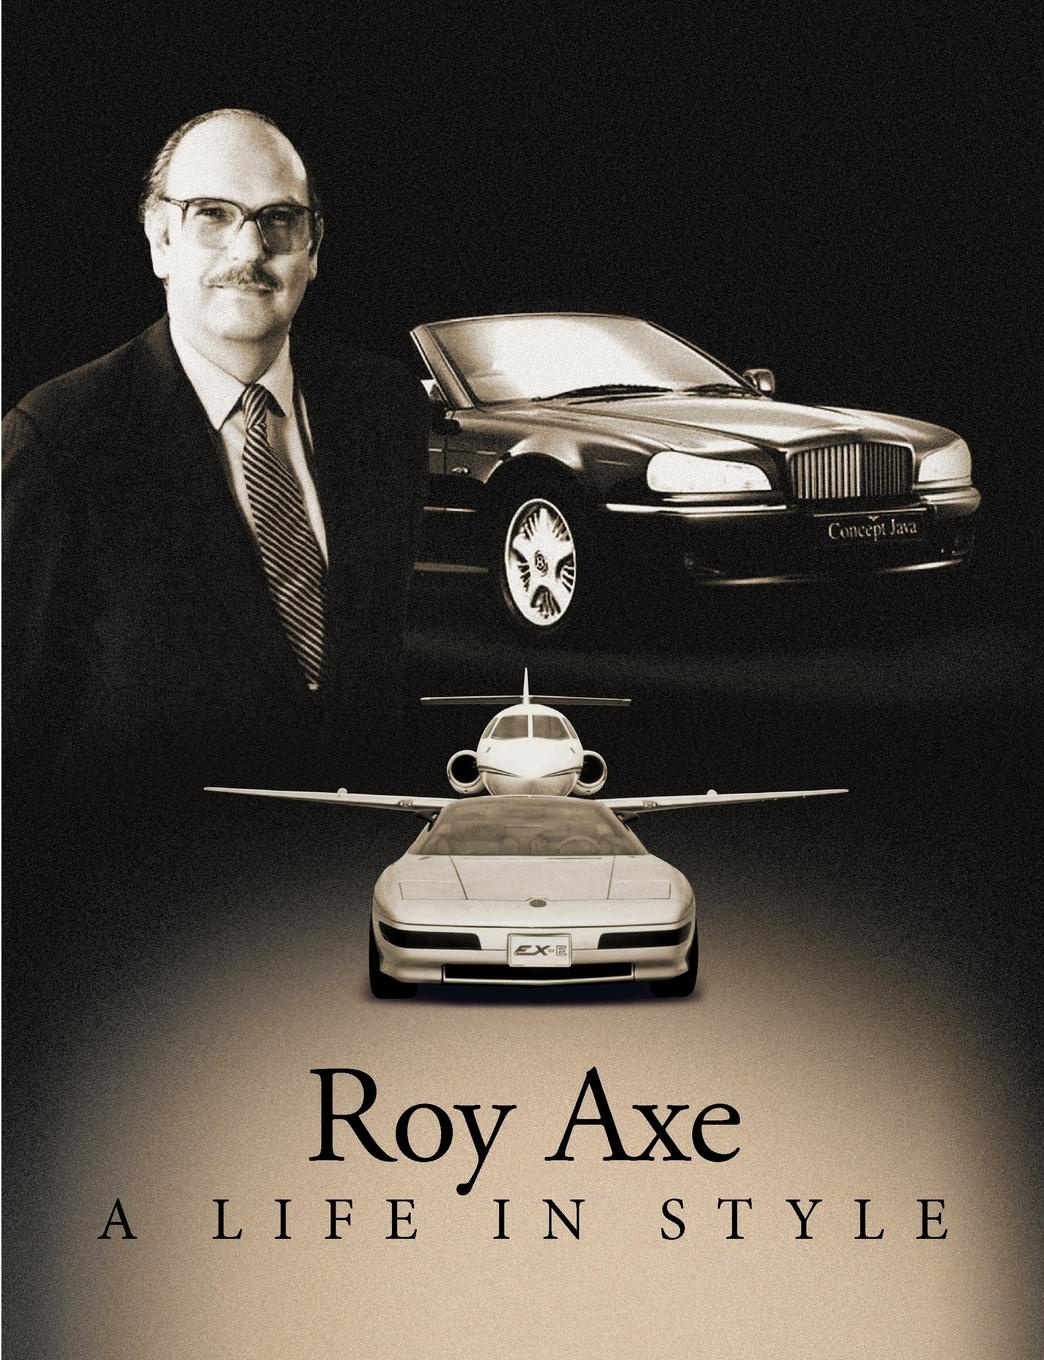 Roy Axe A Life in Style